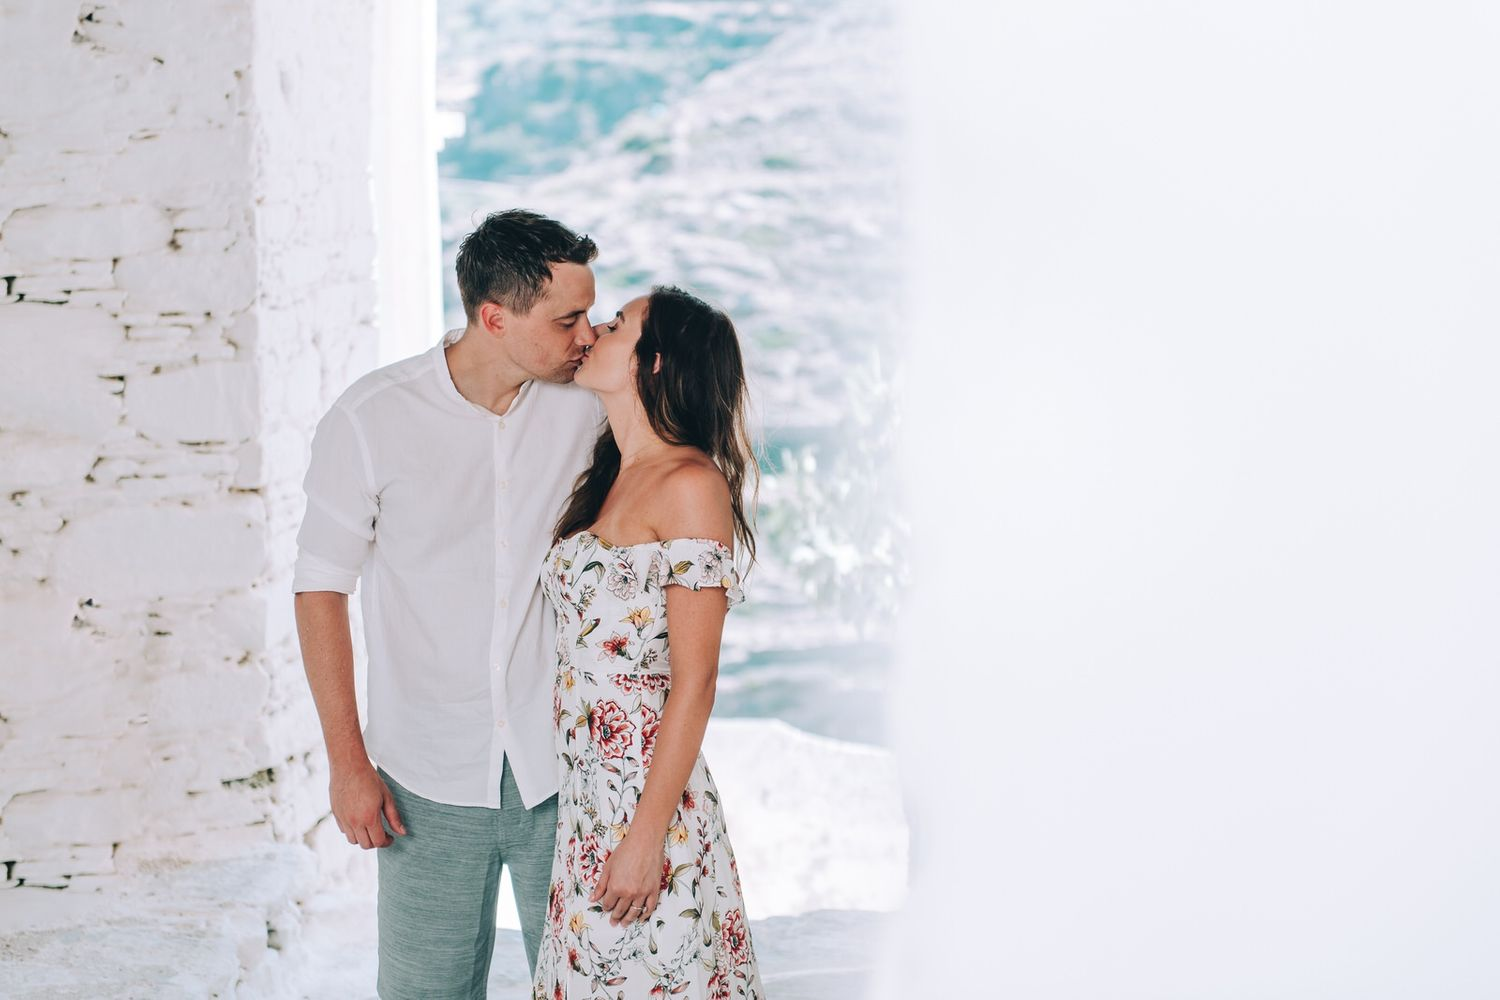 couple in engagement shooting at kastro in sifnos island